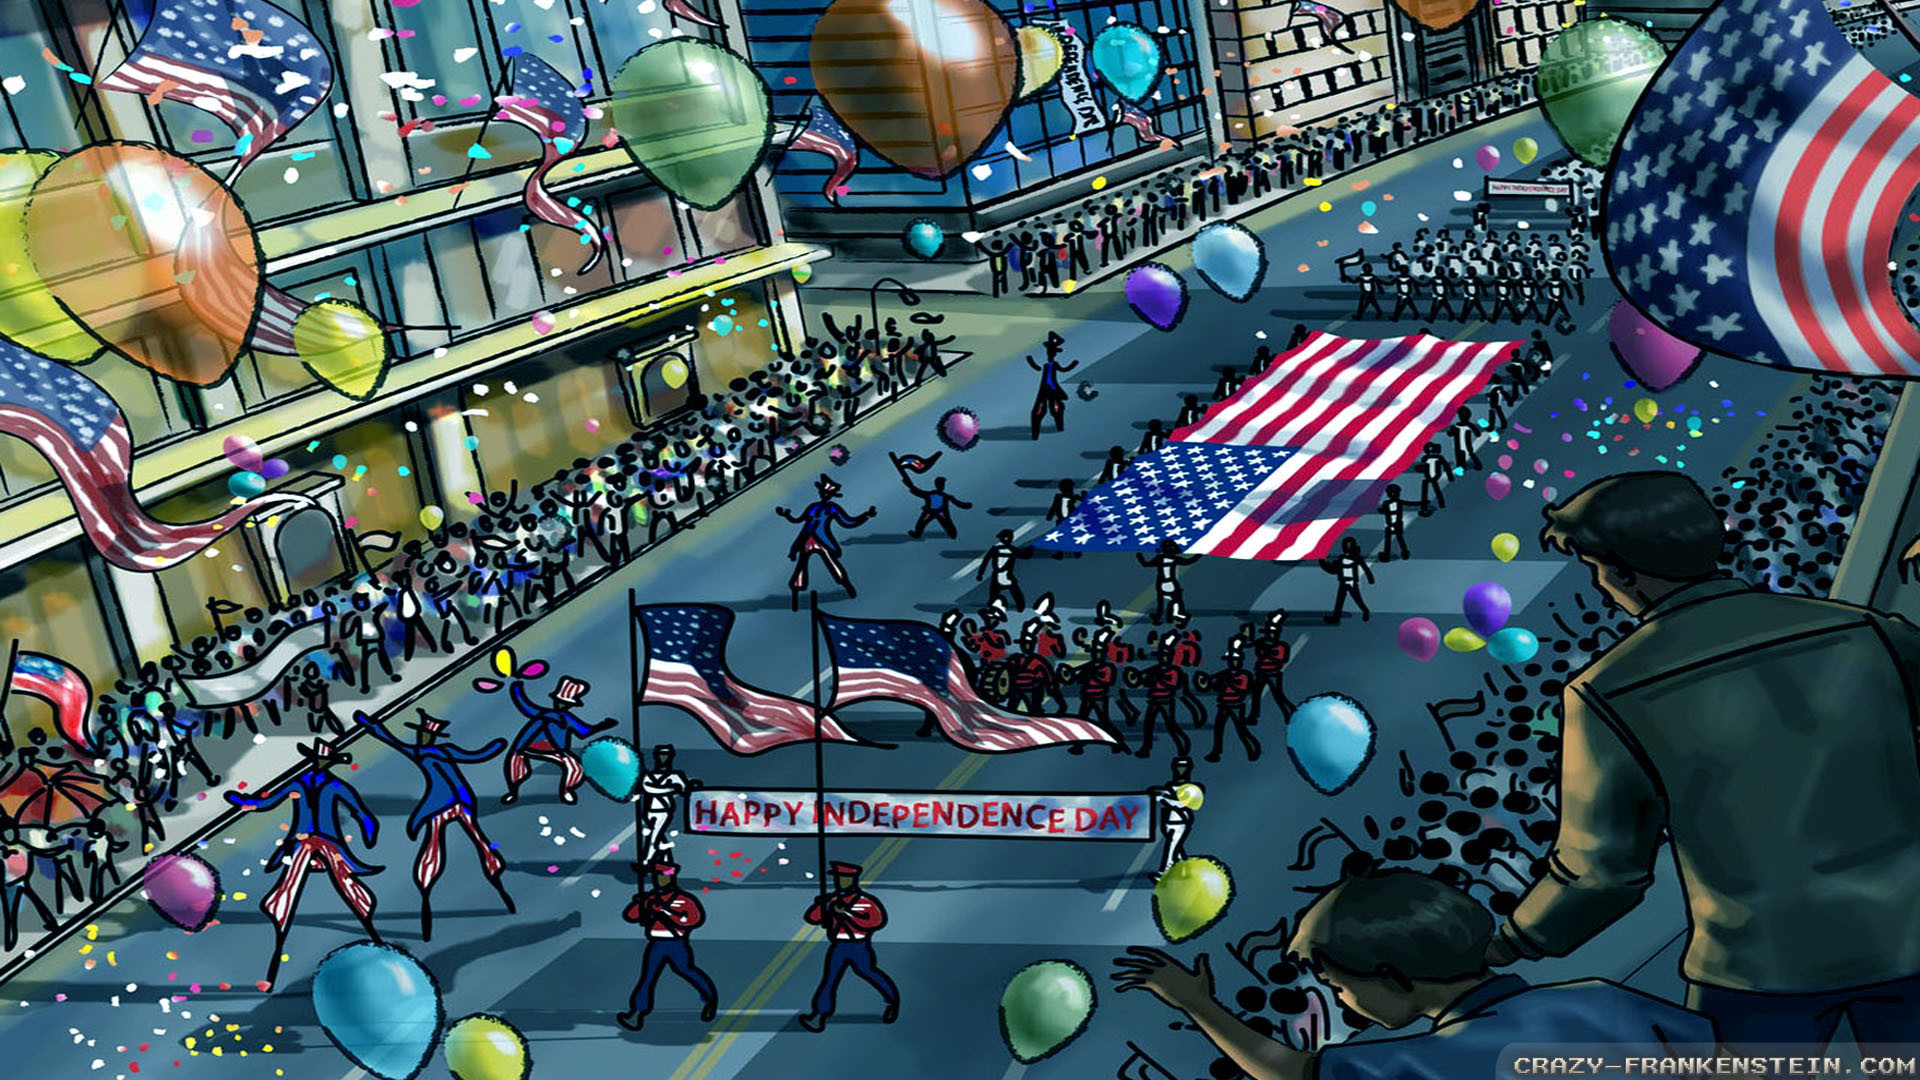 Wallpaper: July 4th parade wallpapers. Resolution: 1024×768 | 1280×1024 |  1600×1200. Widescreen Res: 1440×900 | 1680×1050 | 1920×1200